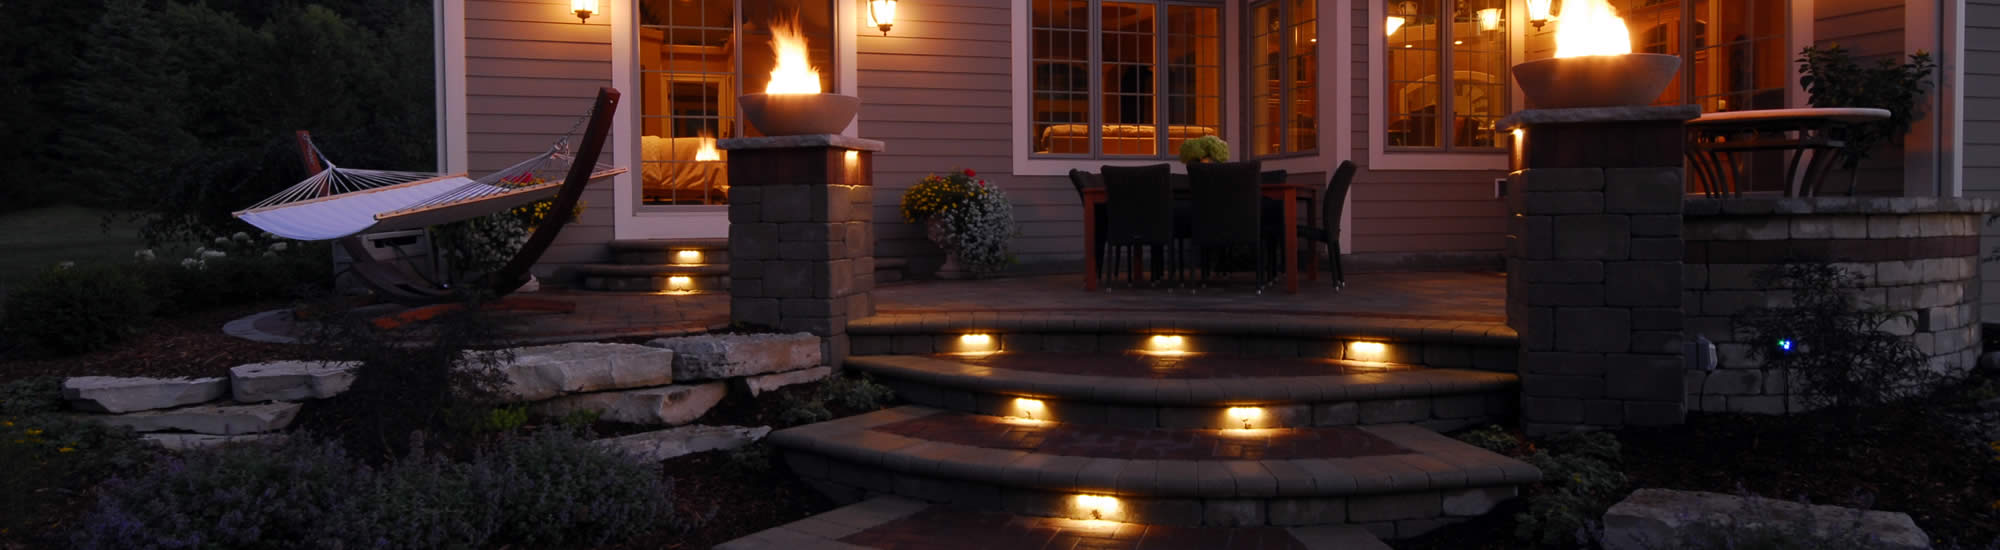 Fire Featurs | Outdoor Fire Places and Firepits